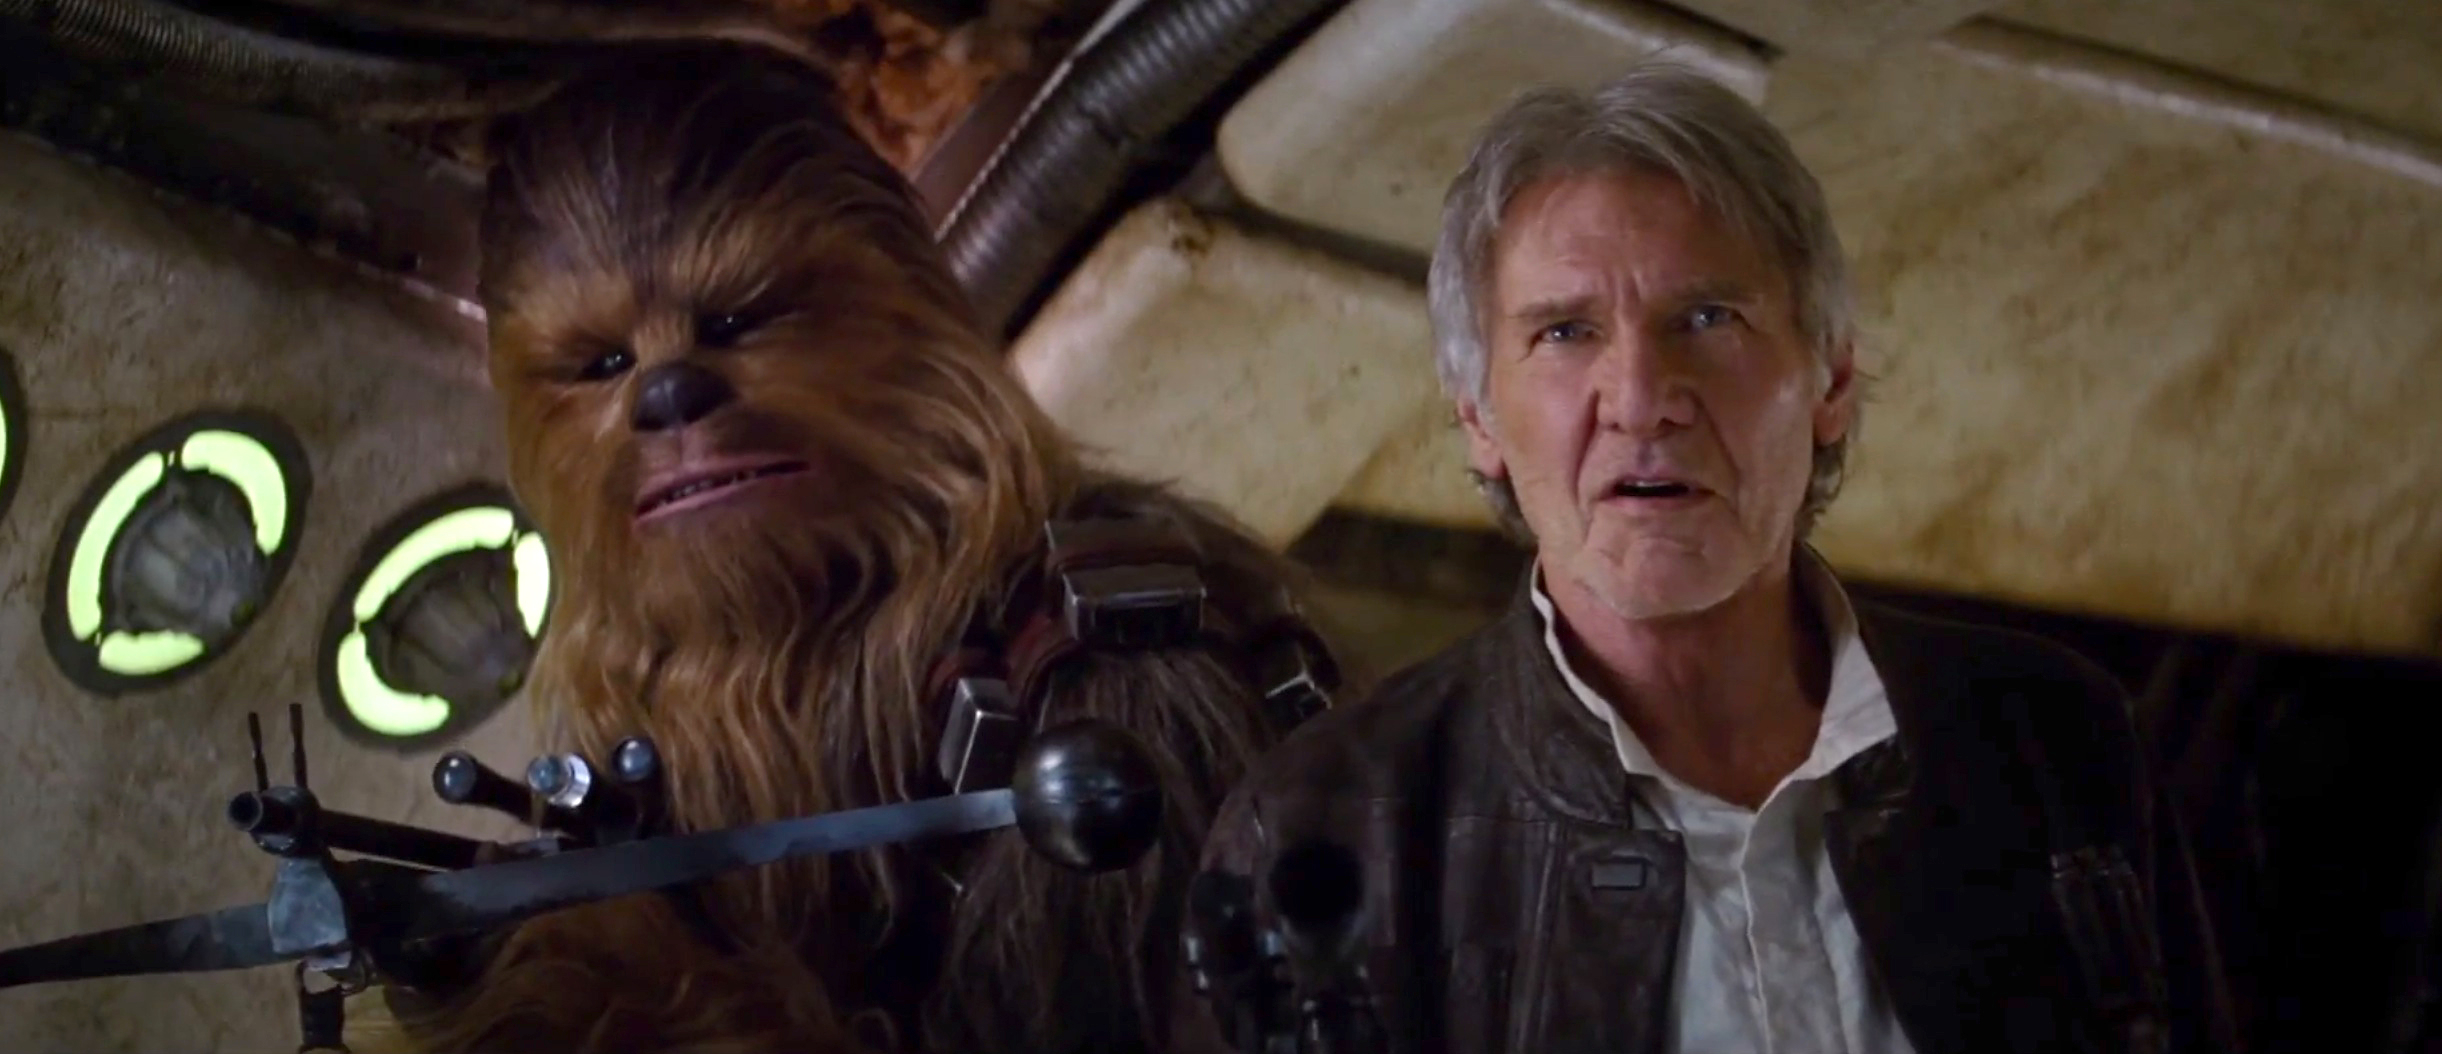 'Star Wars' teaser: Chewie gives us chills   USA Entertainment Now